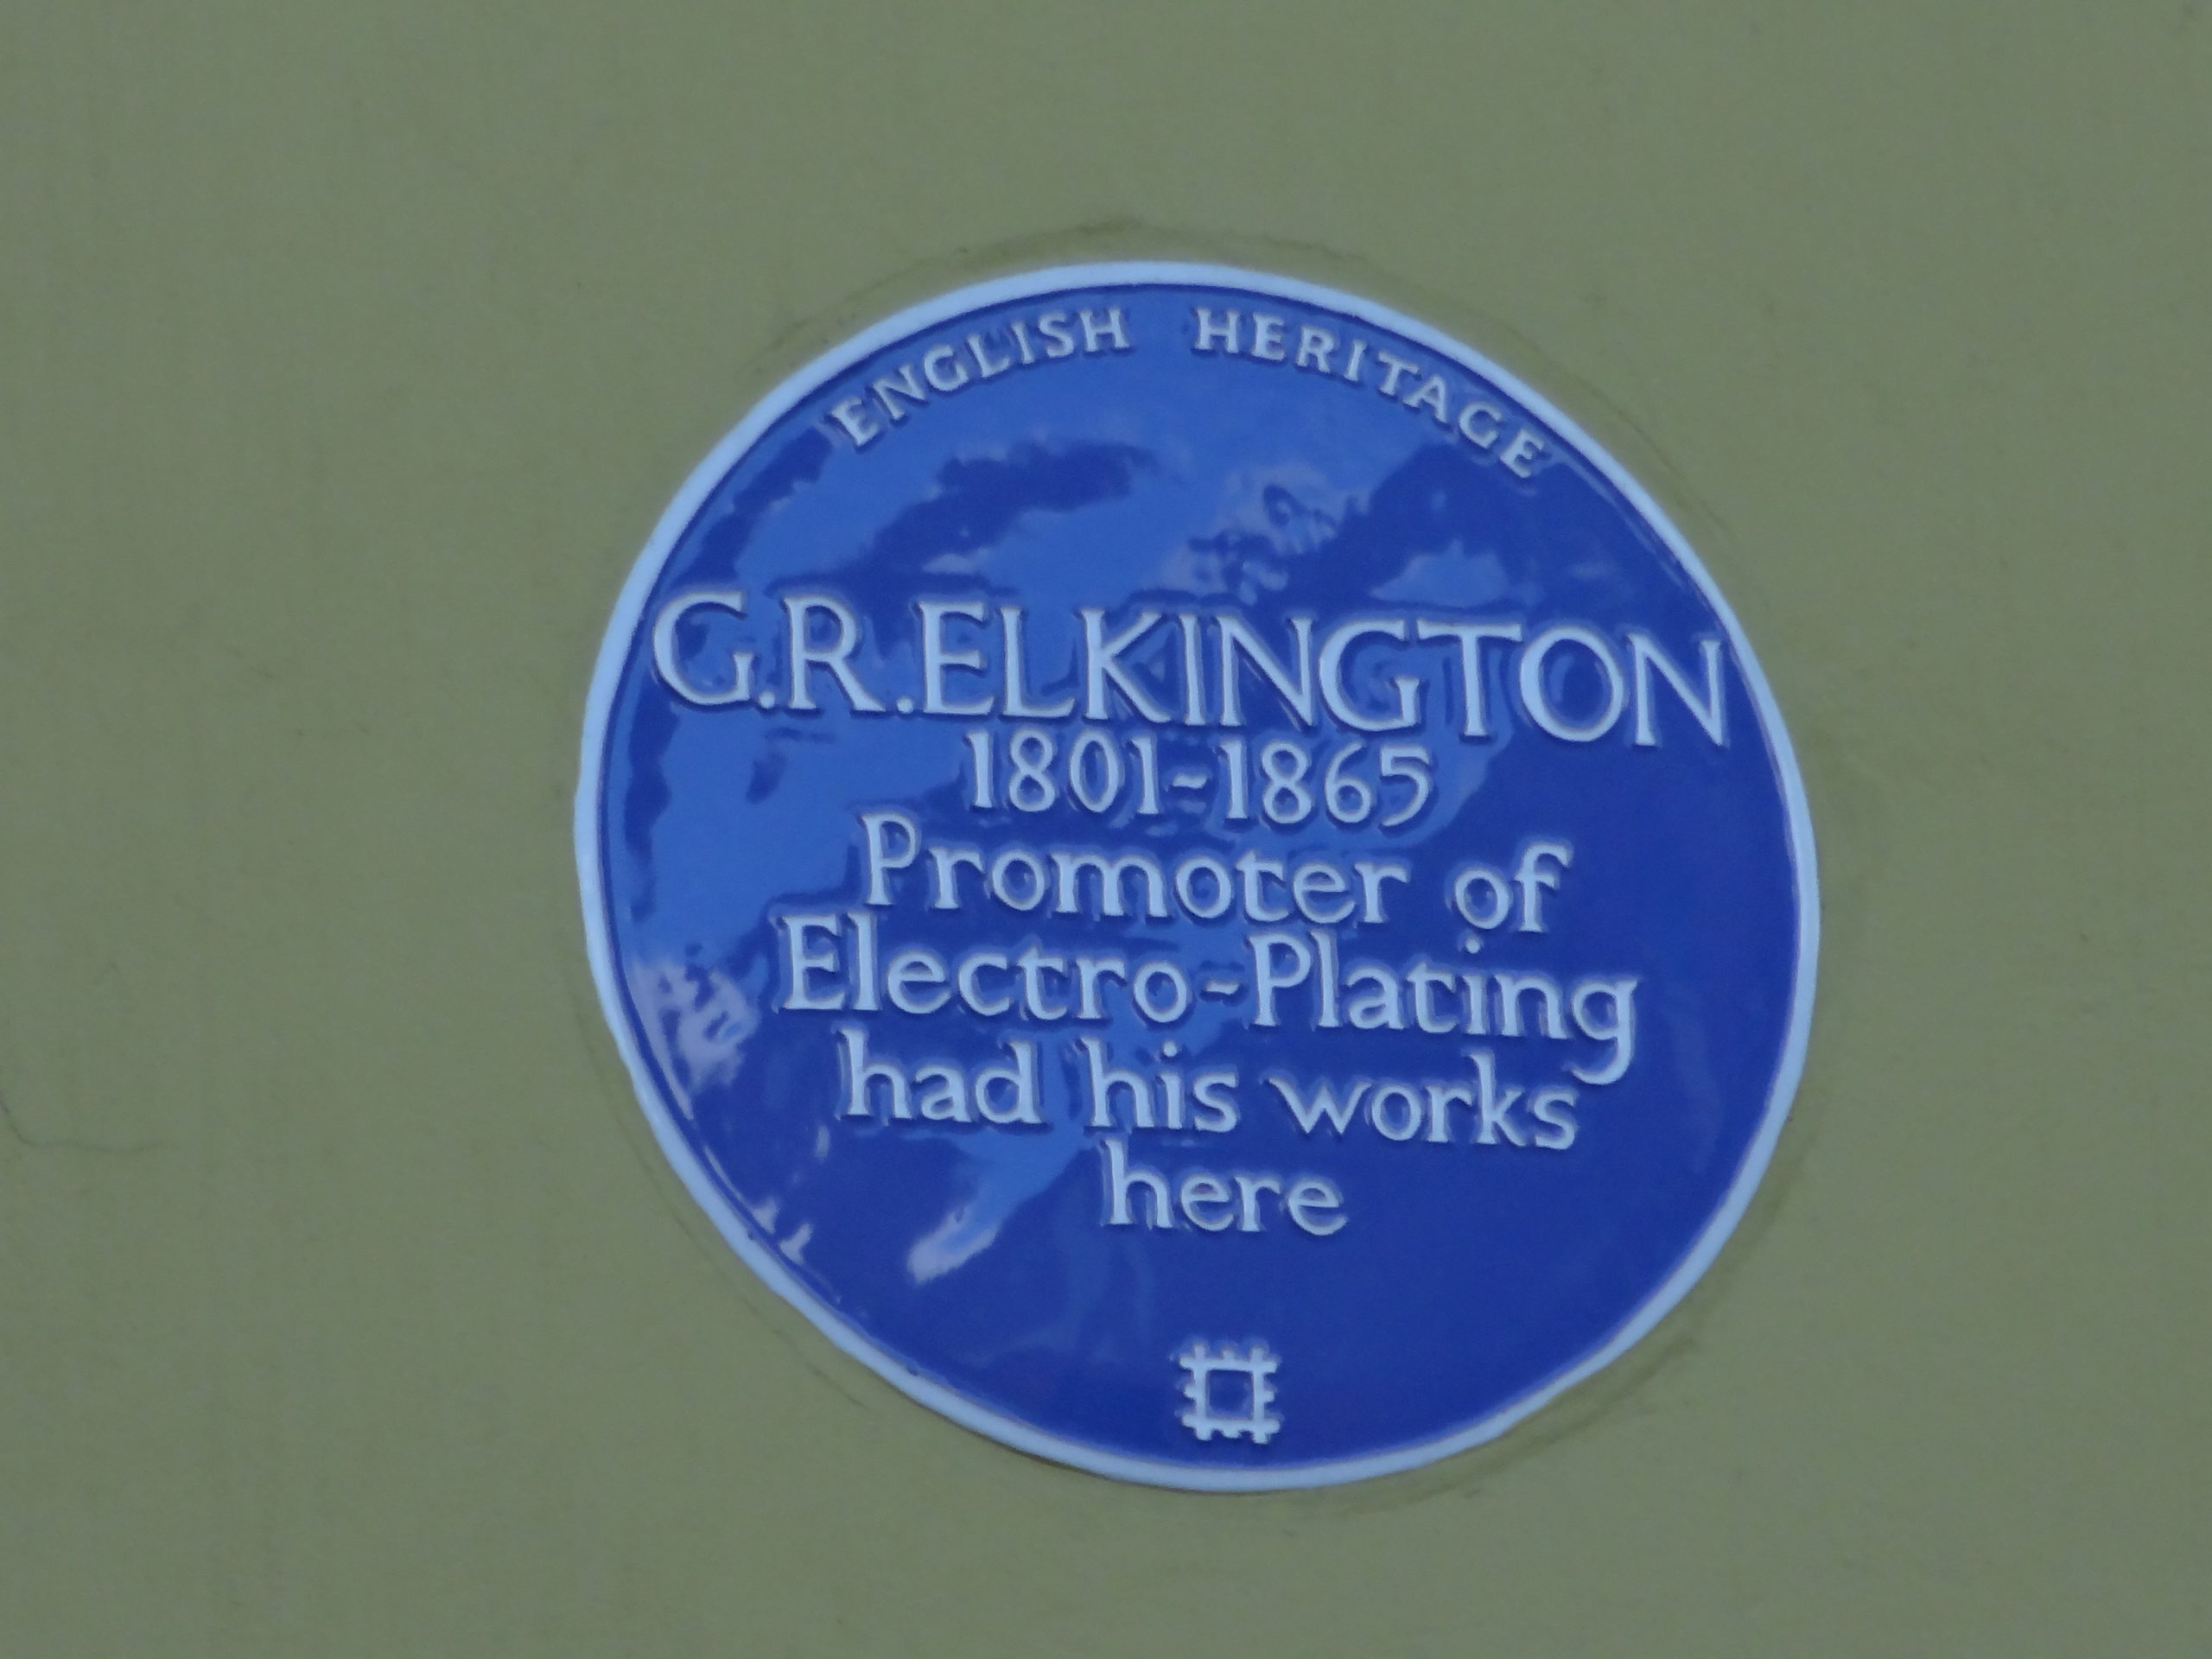 George Elkington Plaque in Newhall Street Photo - Graham Davies